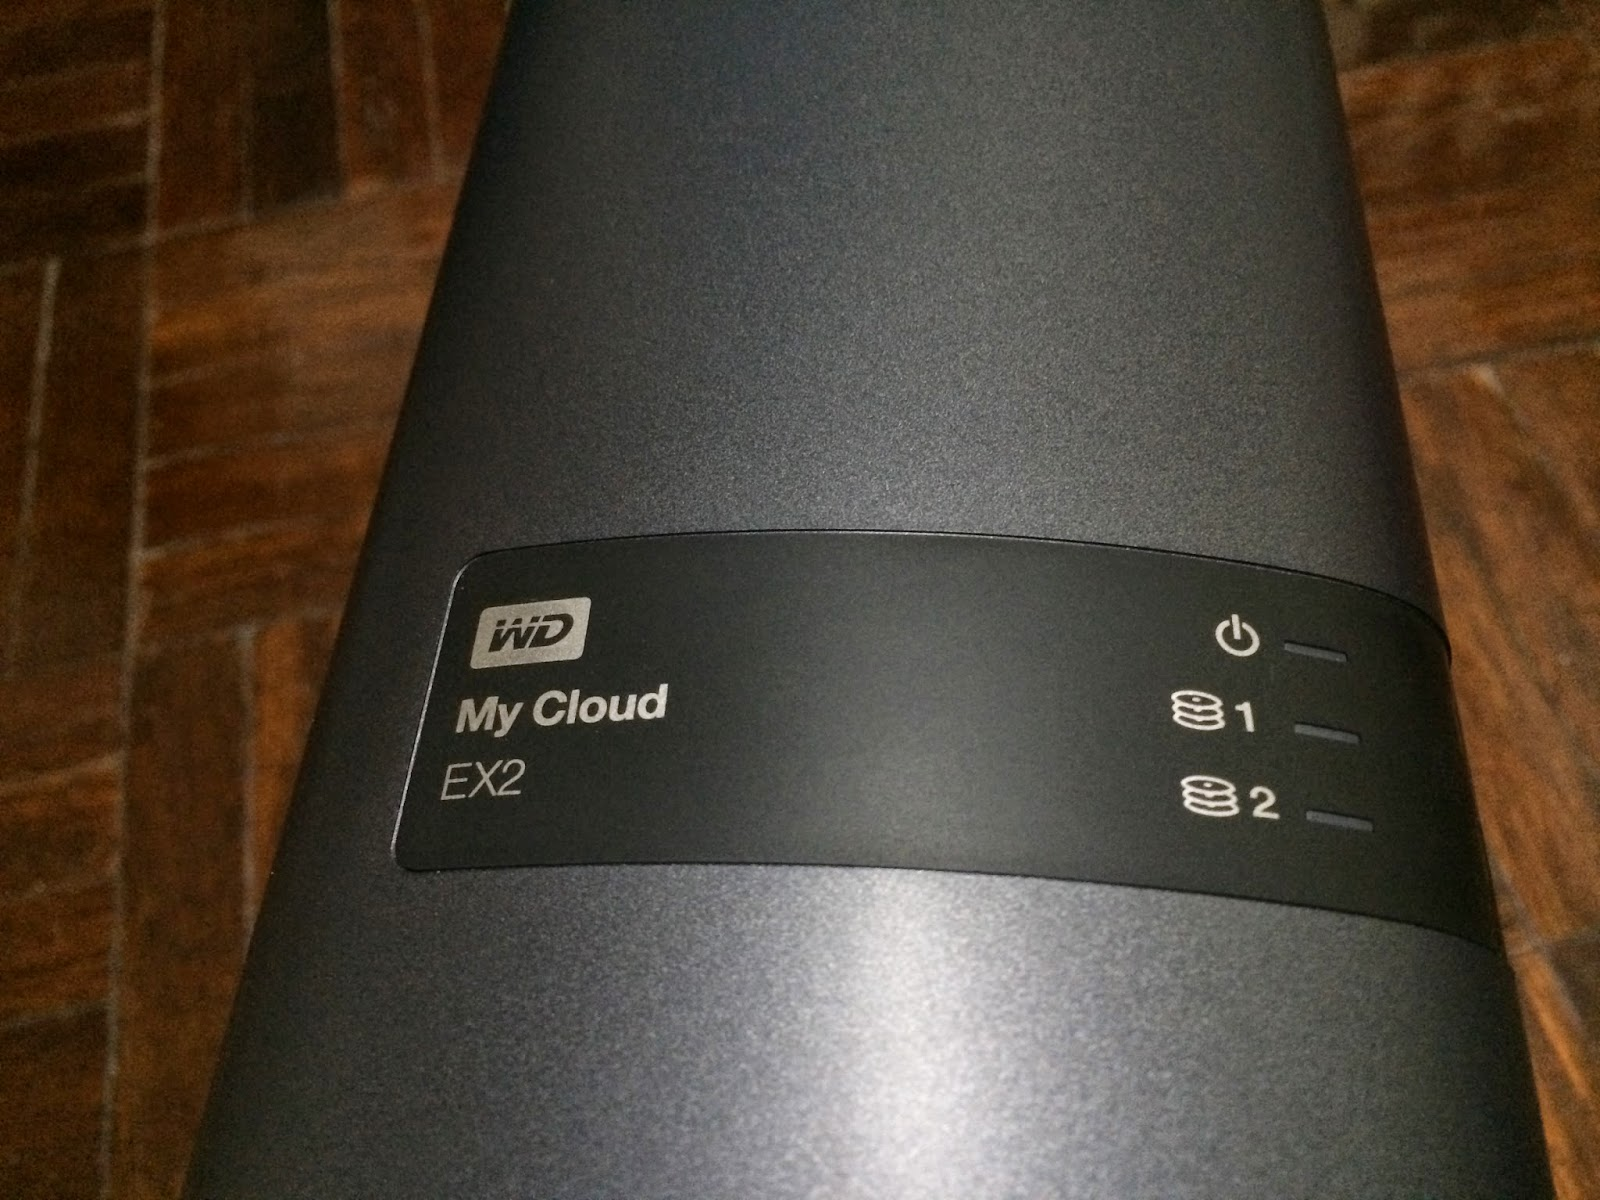 Unboxing & Review: Western Digital My Cloud EX2 131